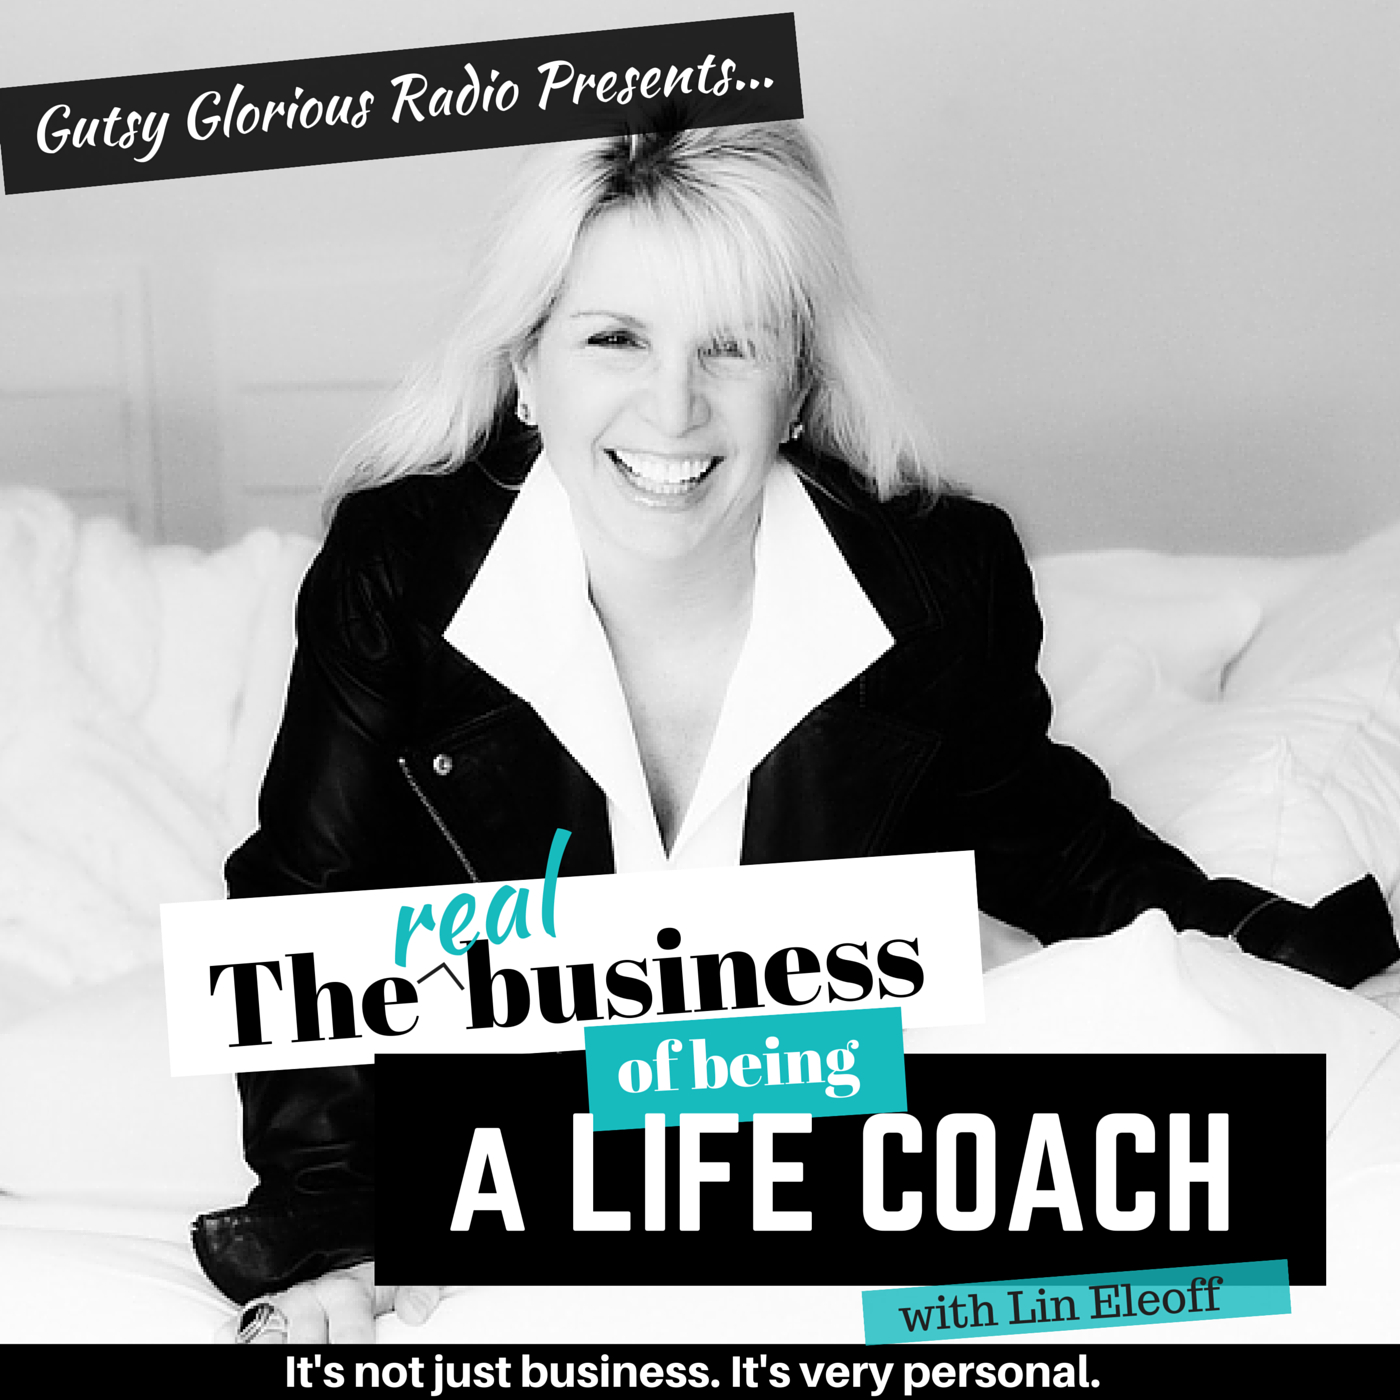 The Business of Being a Life Coach with Lin Eleoff